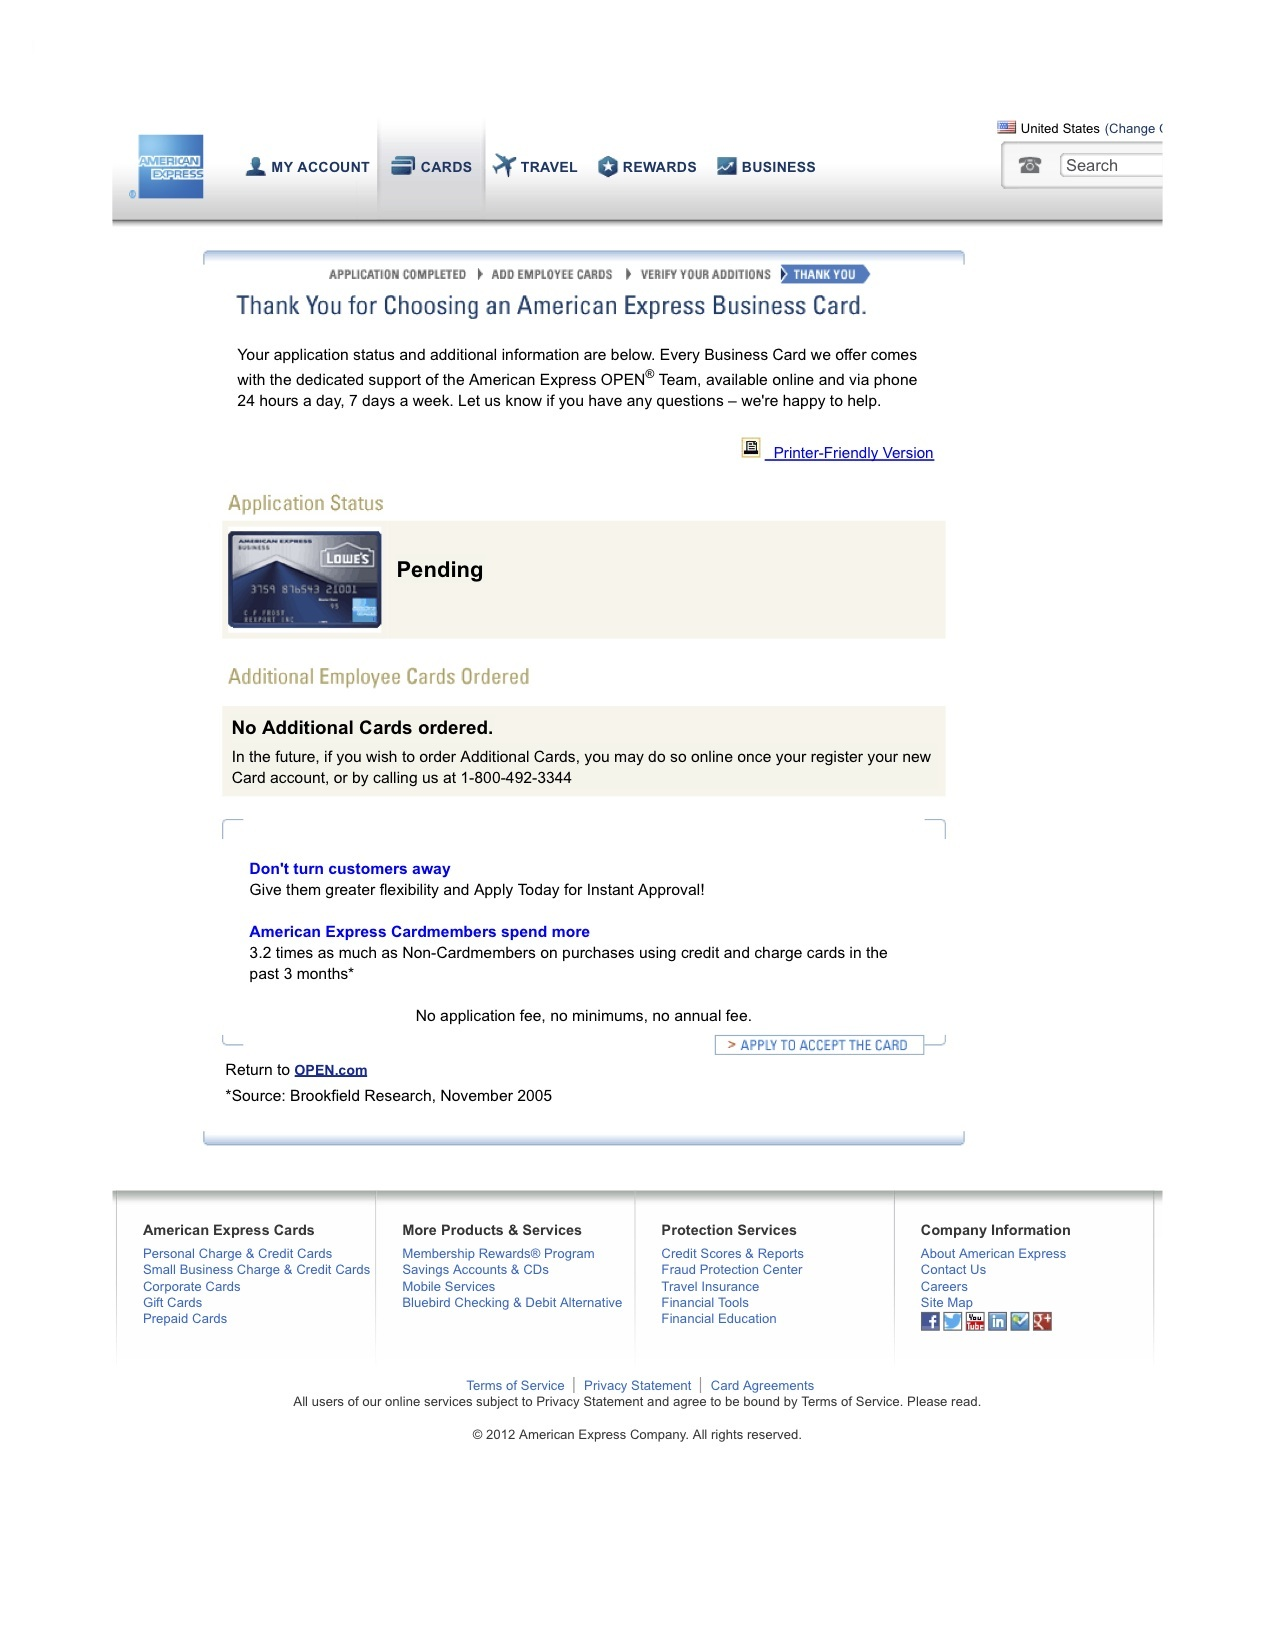 Just GOT Approved for American Express Lowe\'s Busi... - myFICO ...